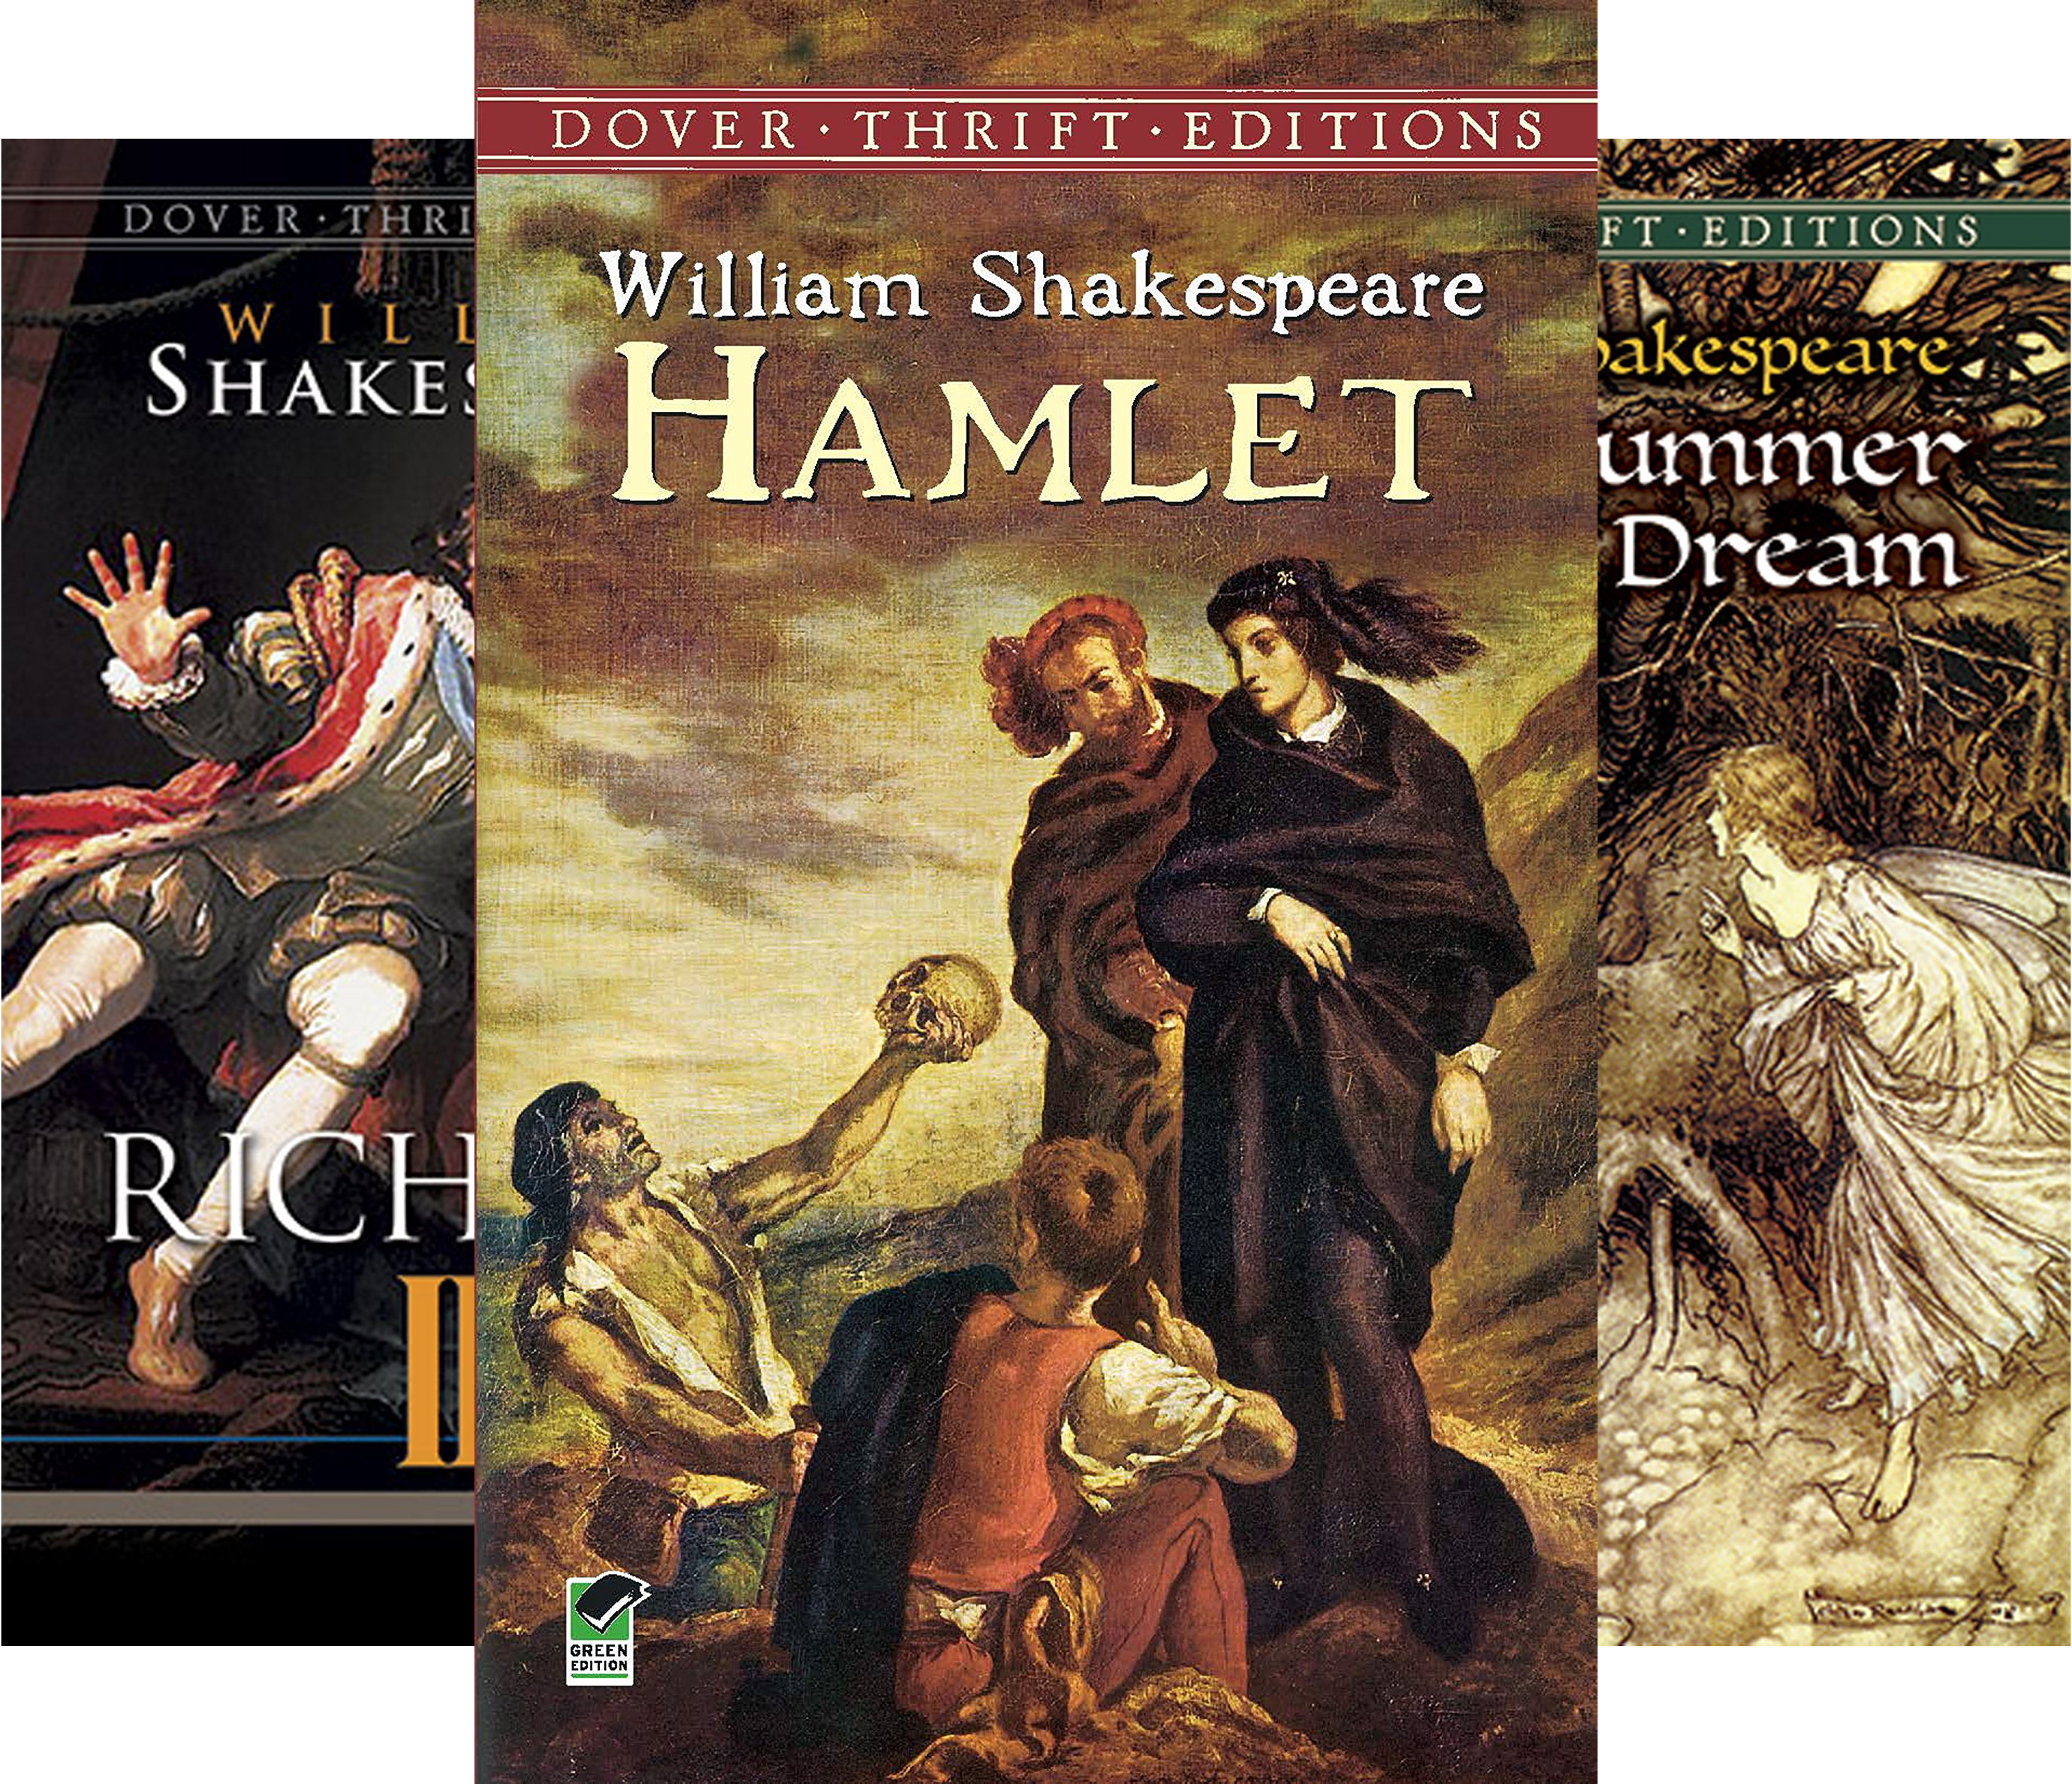 Twelve Plays by Shakespeare (Dover Thrift Editions) (12 Book Series)